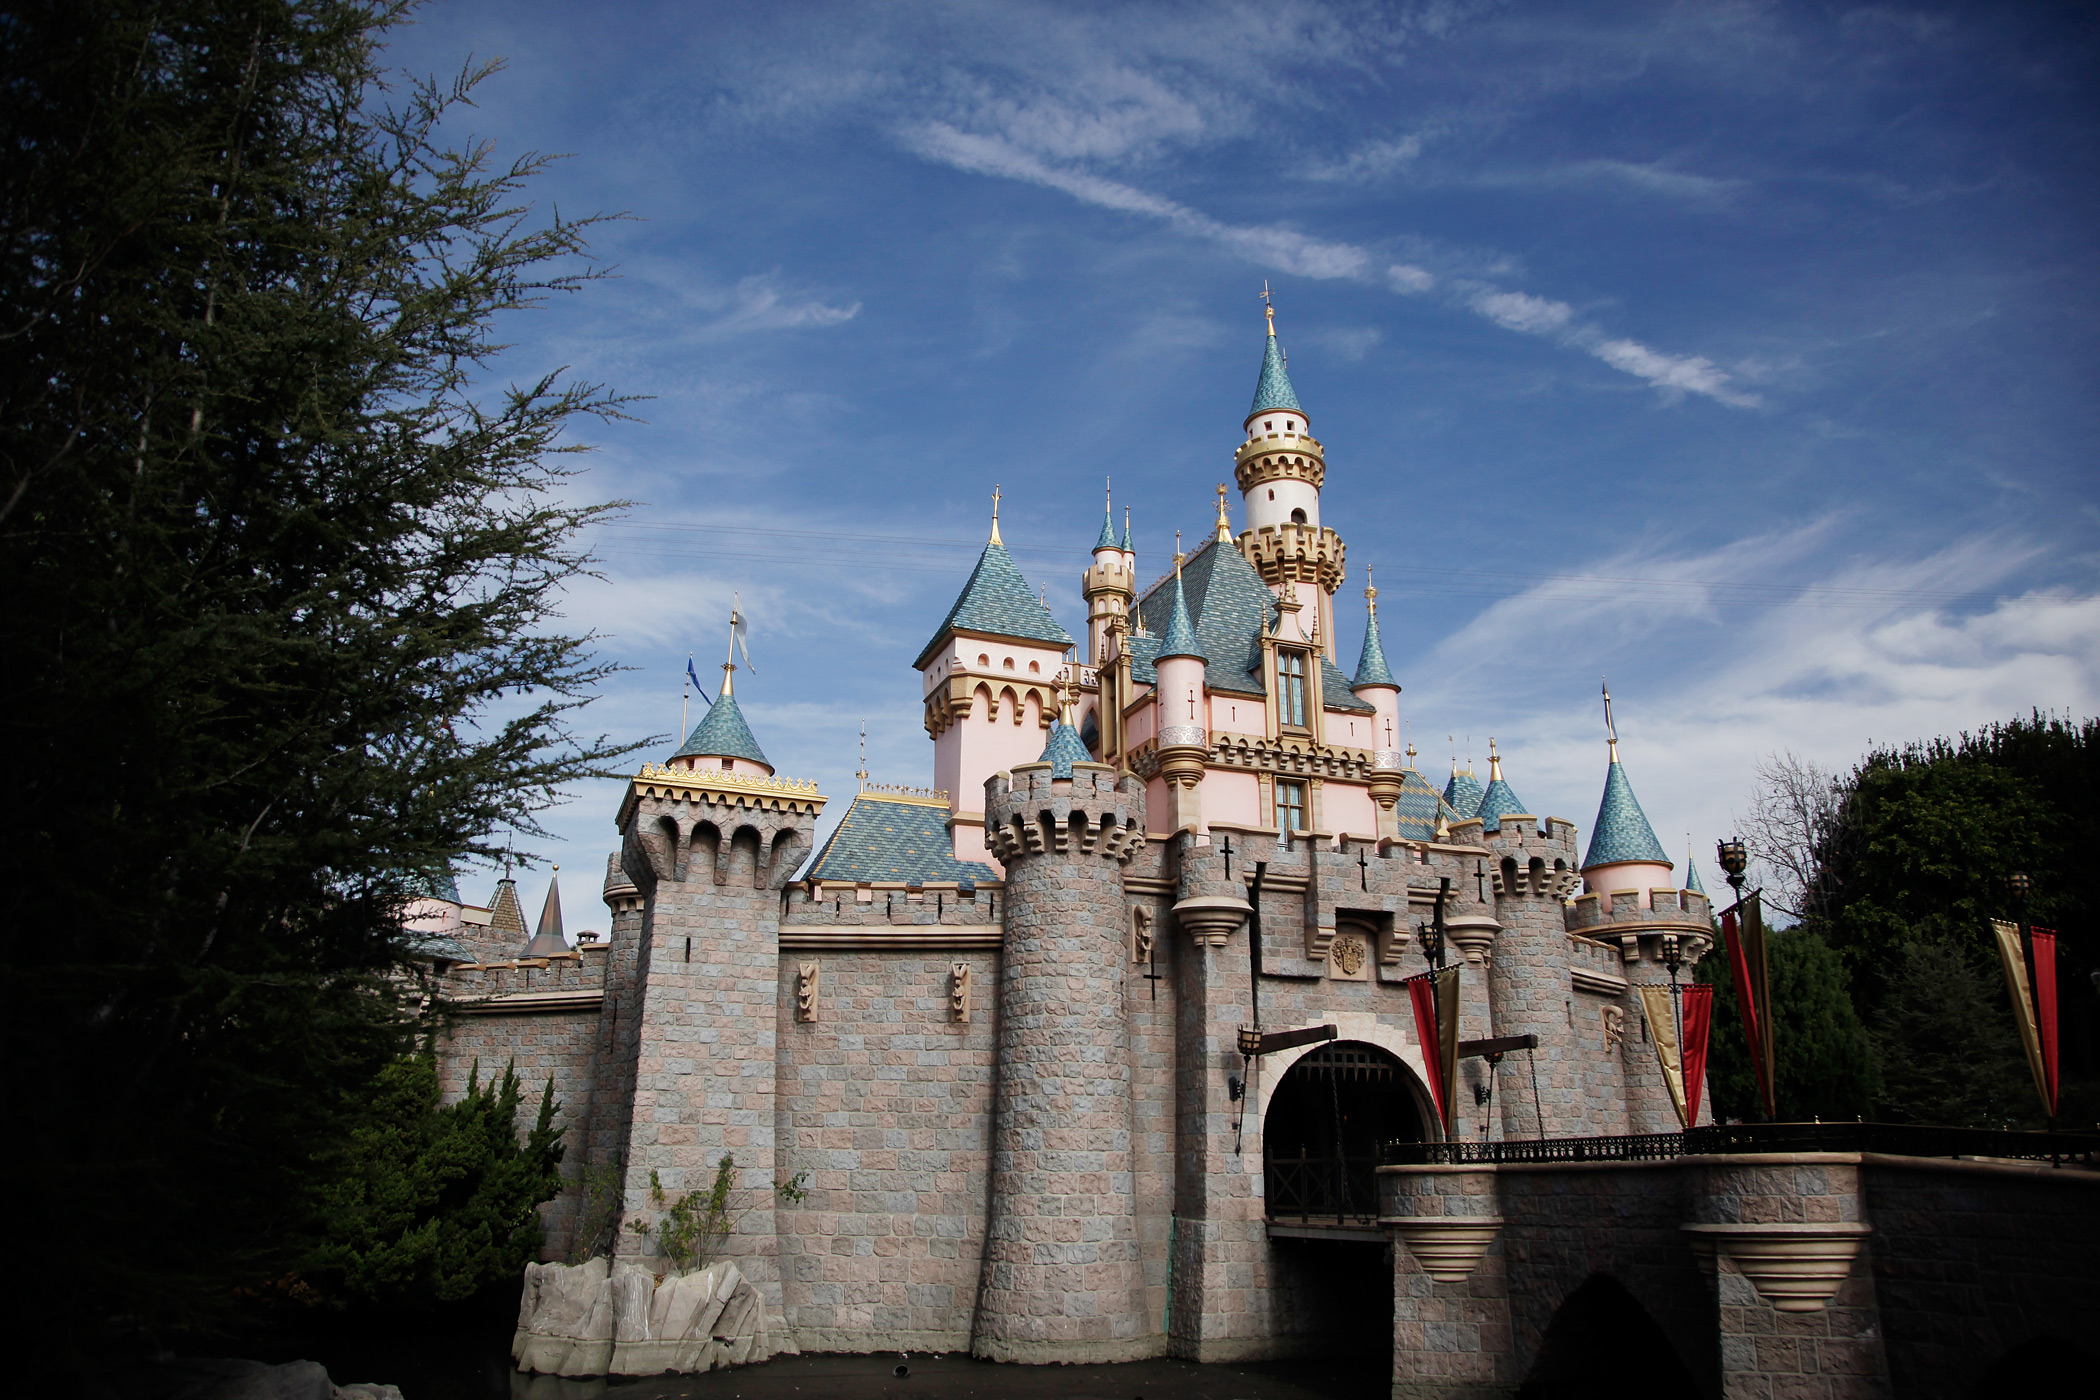 Sleeping Beauty's Castle is seen at Disneyland on Jan. 22, 2015, in Anaheim, Calif.